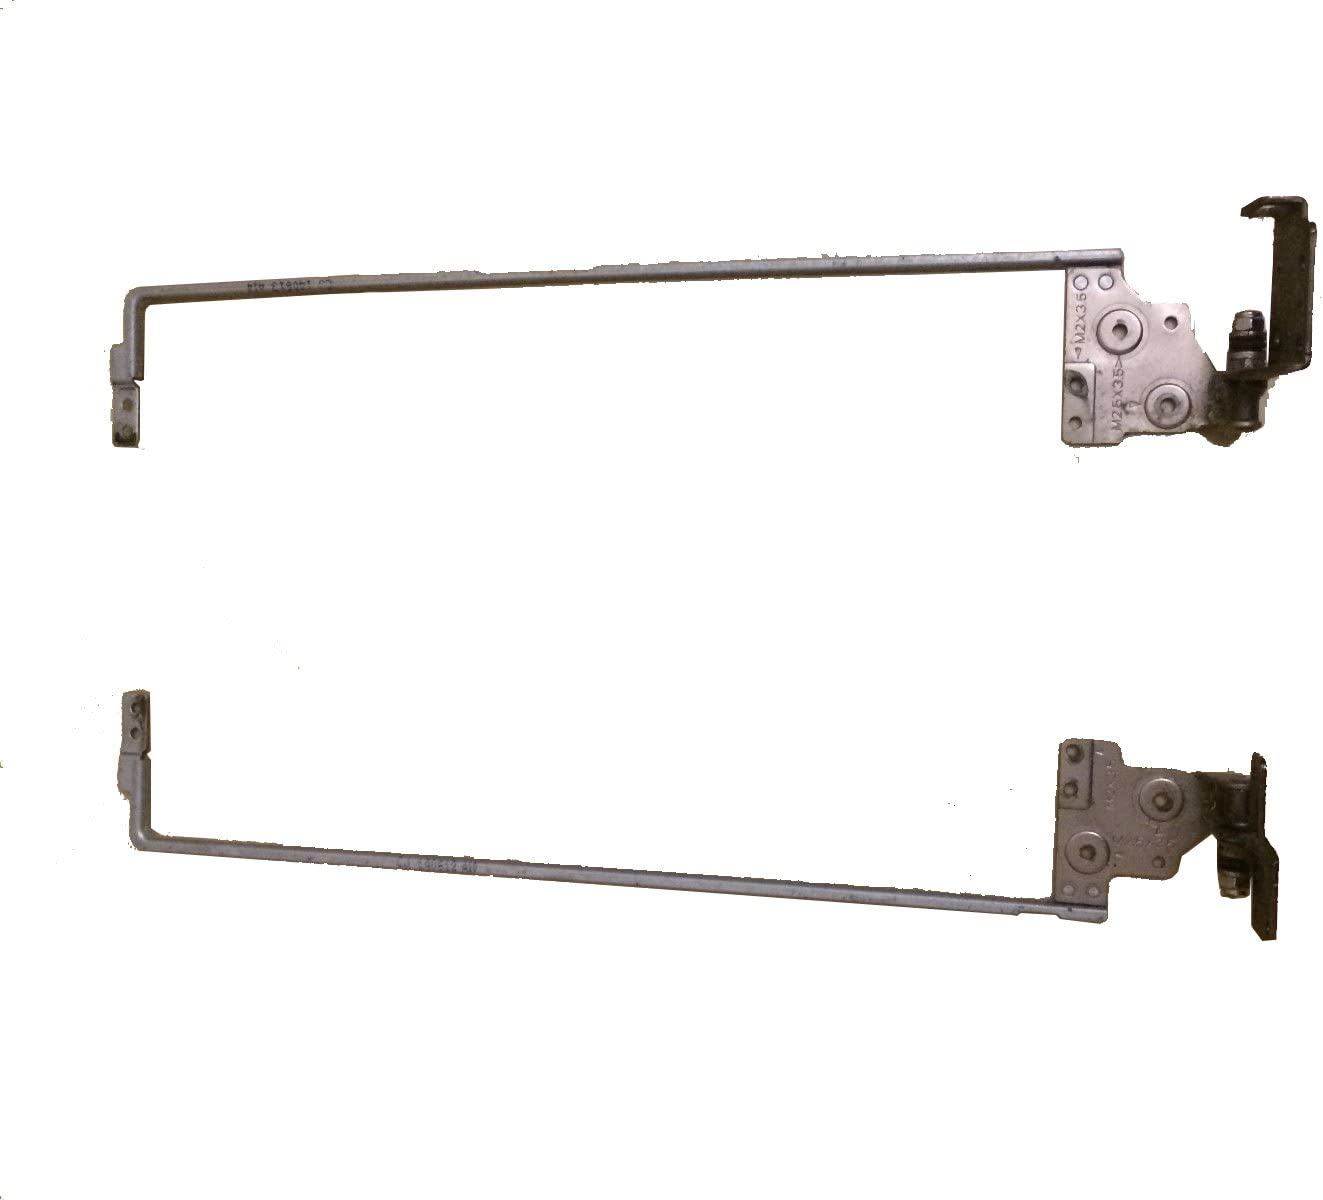 Right for Lenovo Ideapad G480 Compatible AM0N1000200 AM0N1000300 Replacement LCD Hinge Left